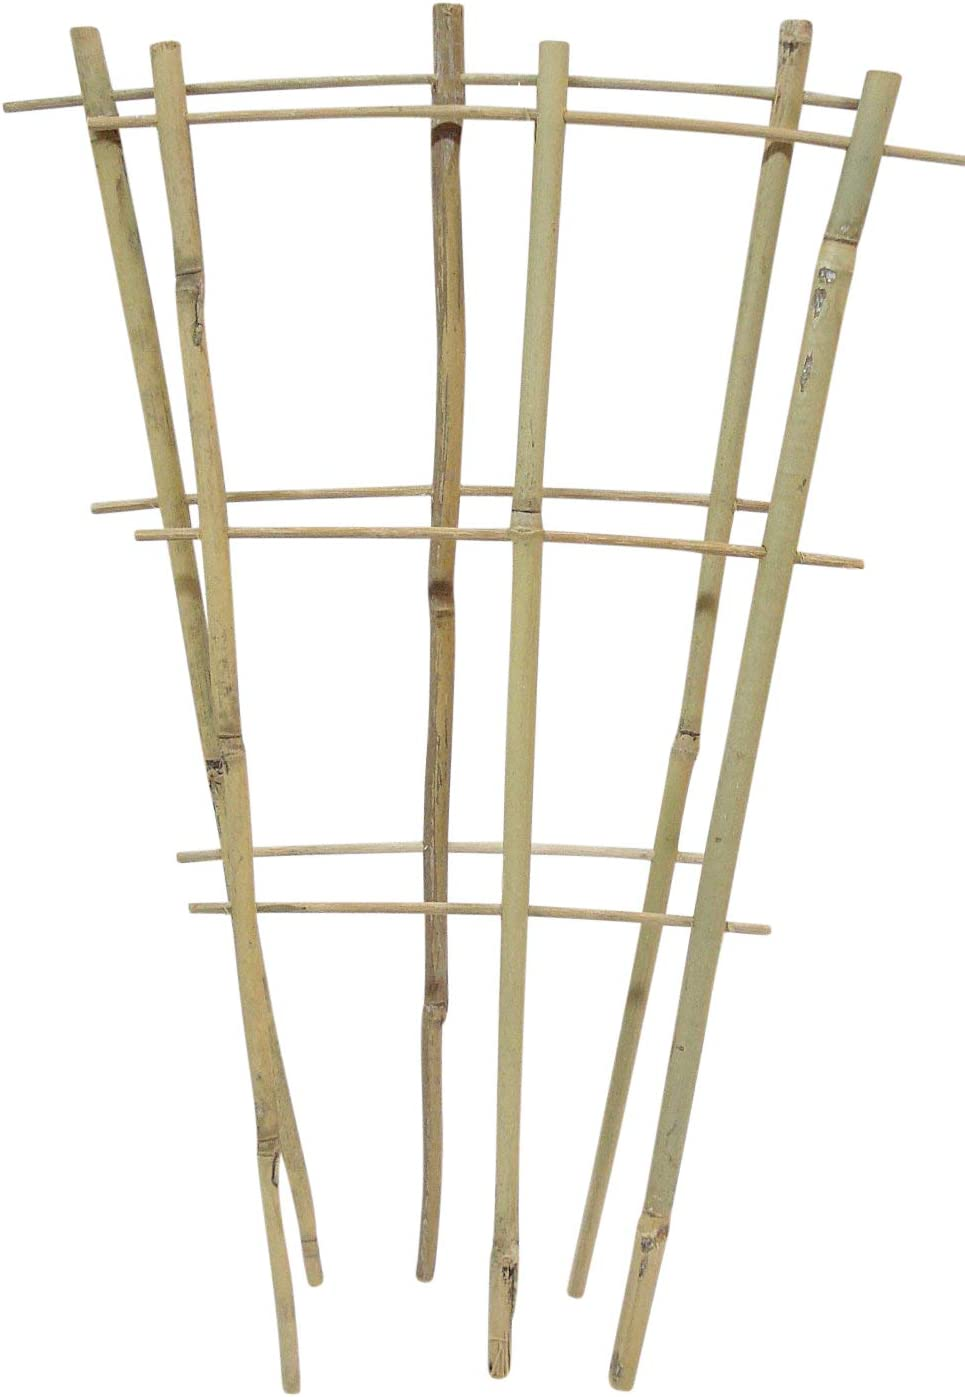 Natural Color Bamboo Trellis 4 inches Tall - Quantity 4